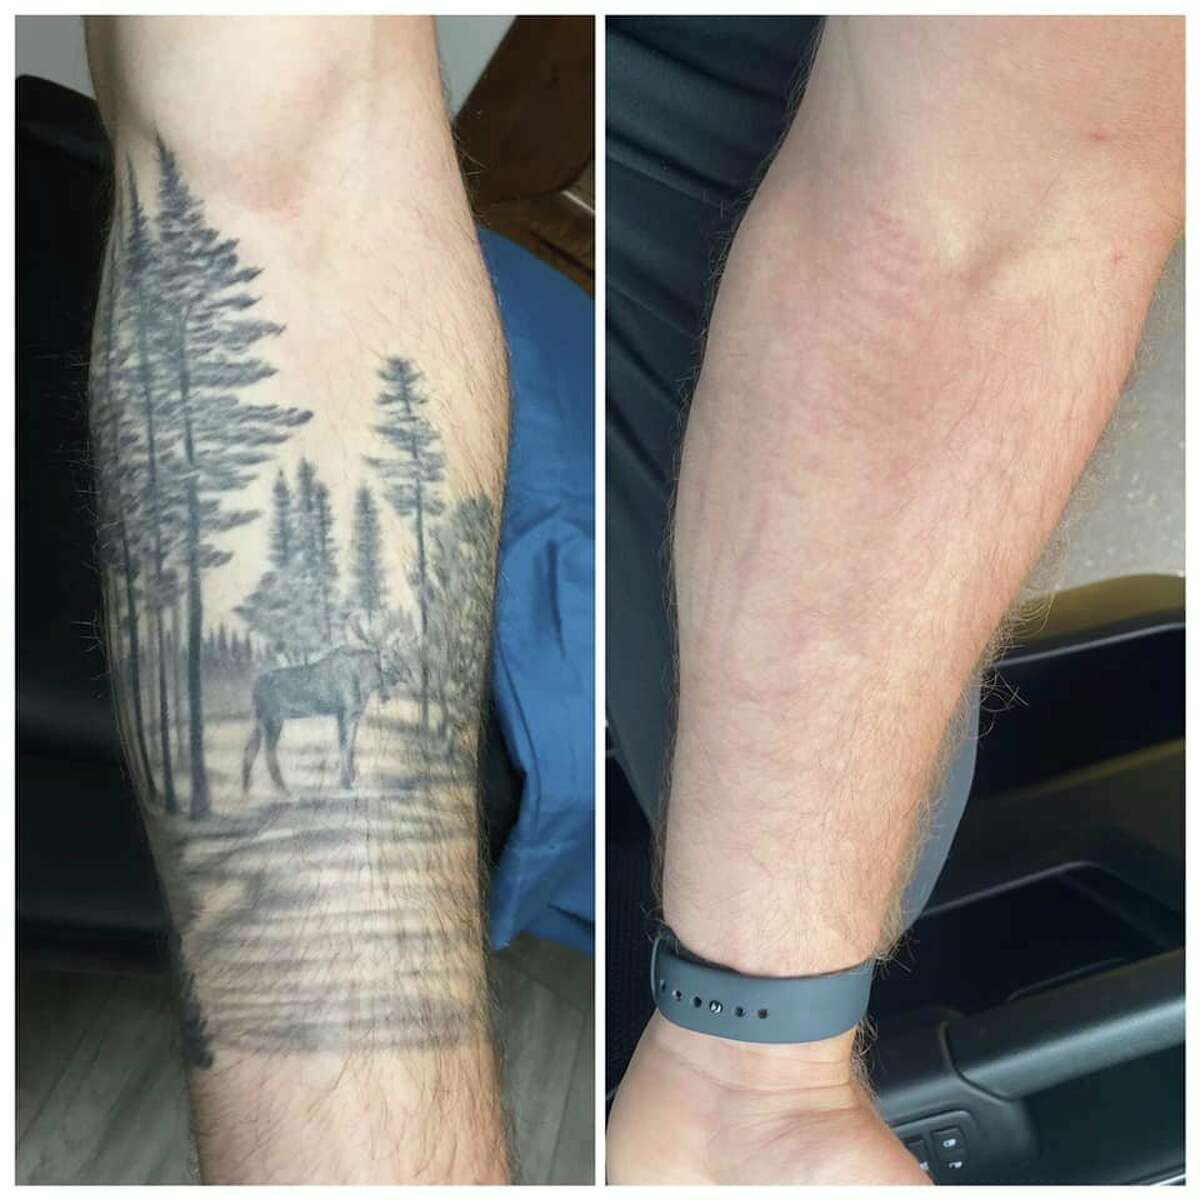 No Regerts Tattoo Removal provides services for completely removing unwanted tattoo ink, fading for cover up tattoos, vascular lesion removal no-obligation, as well as complimentary consultations for all patients. (Courtesy photo)